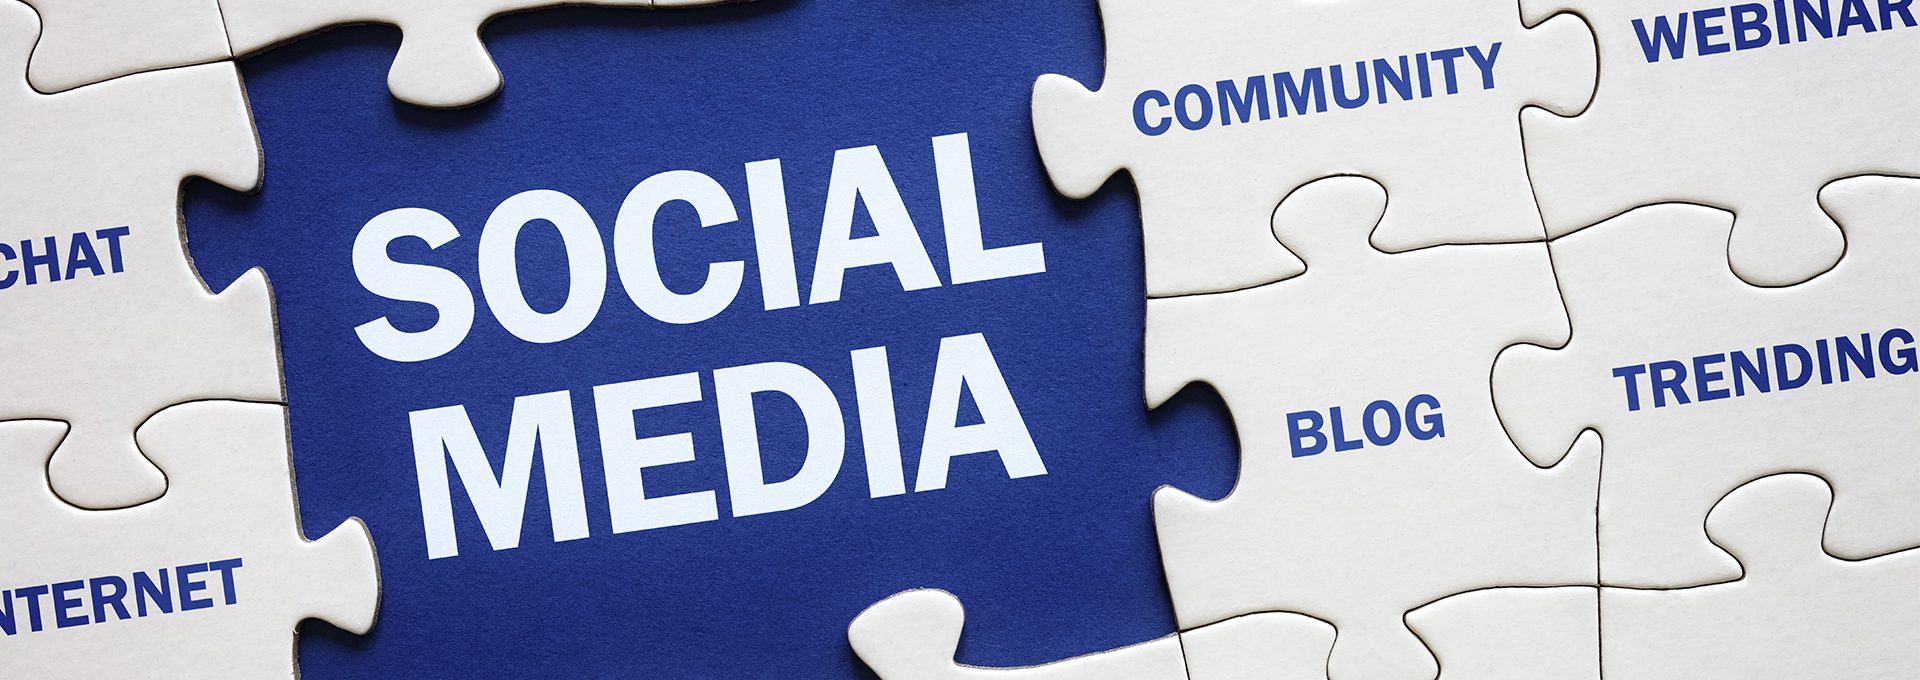 How to Use Social Media to Enhance Your College Experience